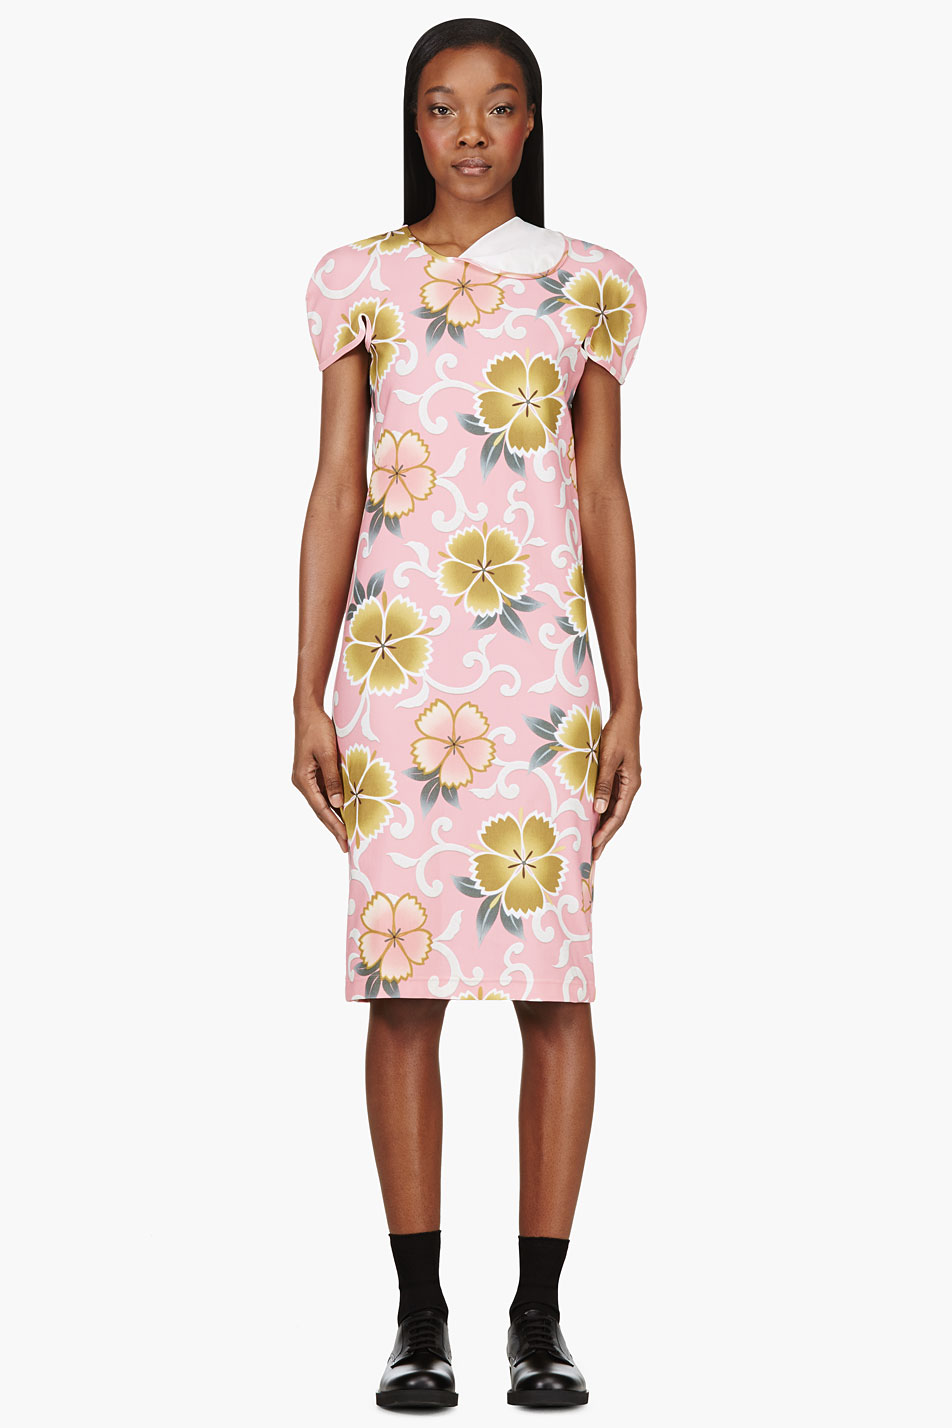 Comme-des-Garcons-Pink-Floral-Stretch-Dress